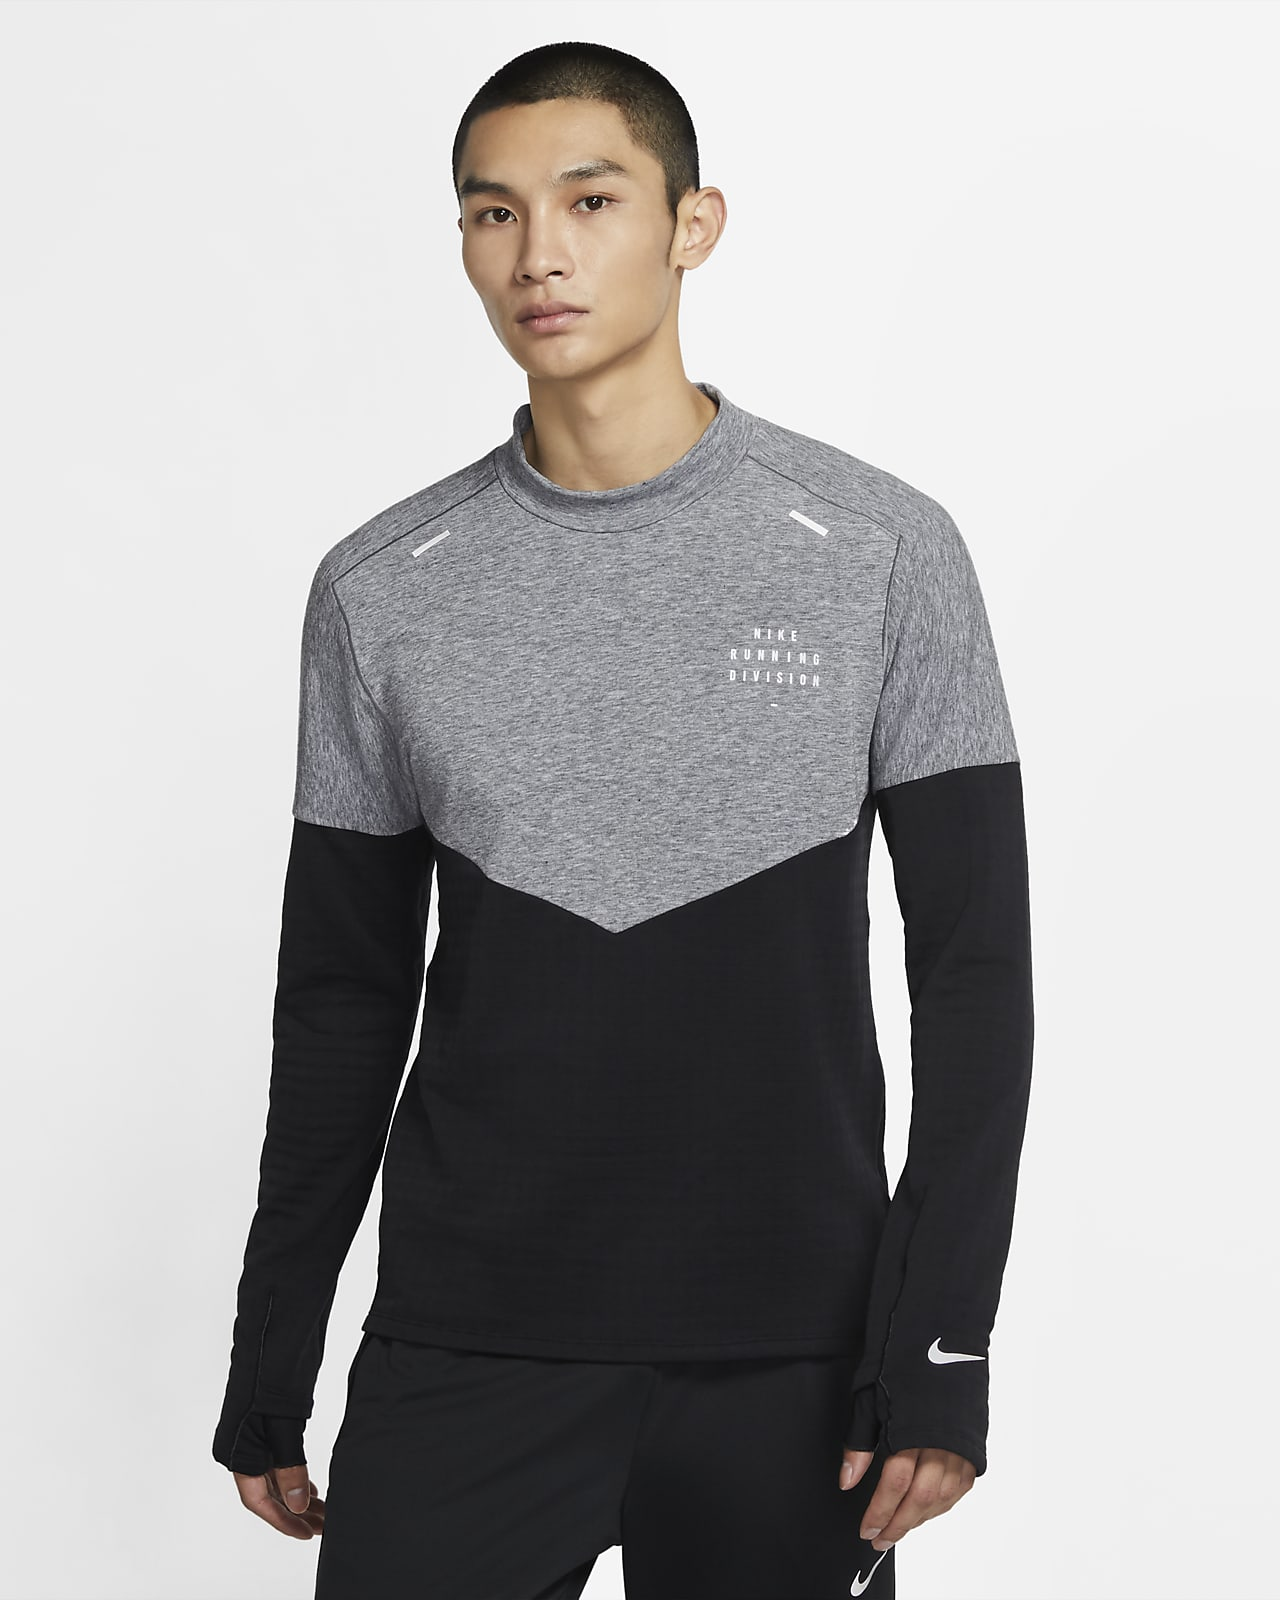 Nike Sphere Run Division Men's Wool Running Top